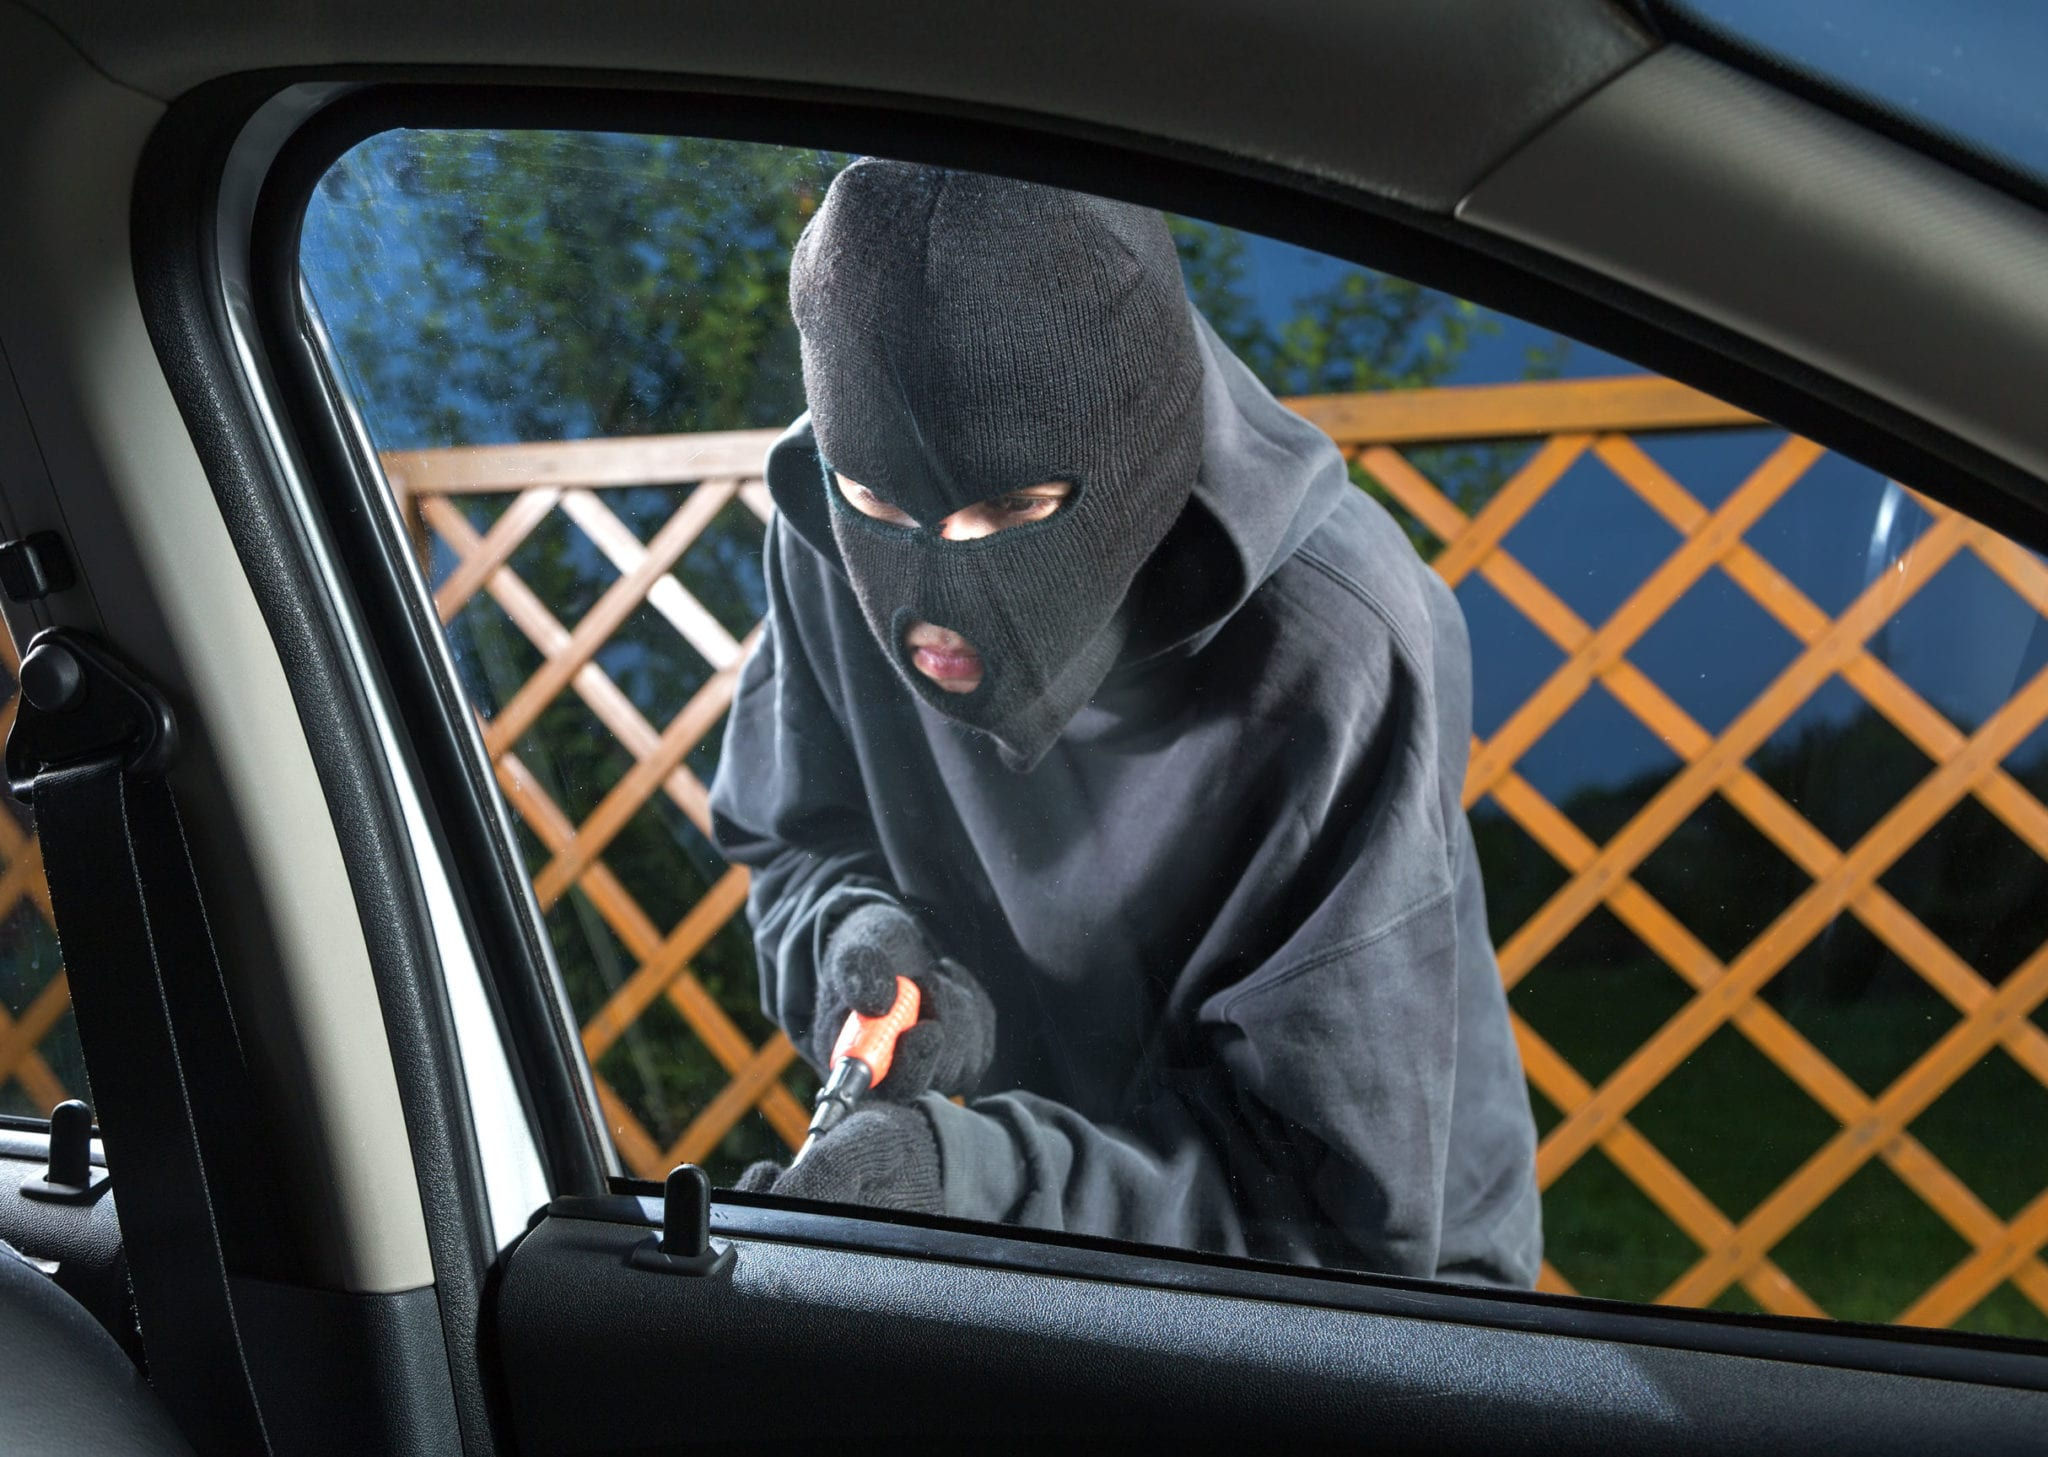 Burglary of a Motor Vehicle is Not the Same as Breaking Into a TX Home